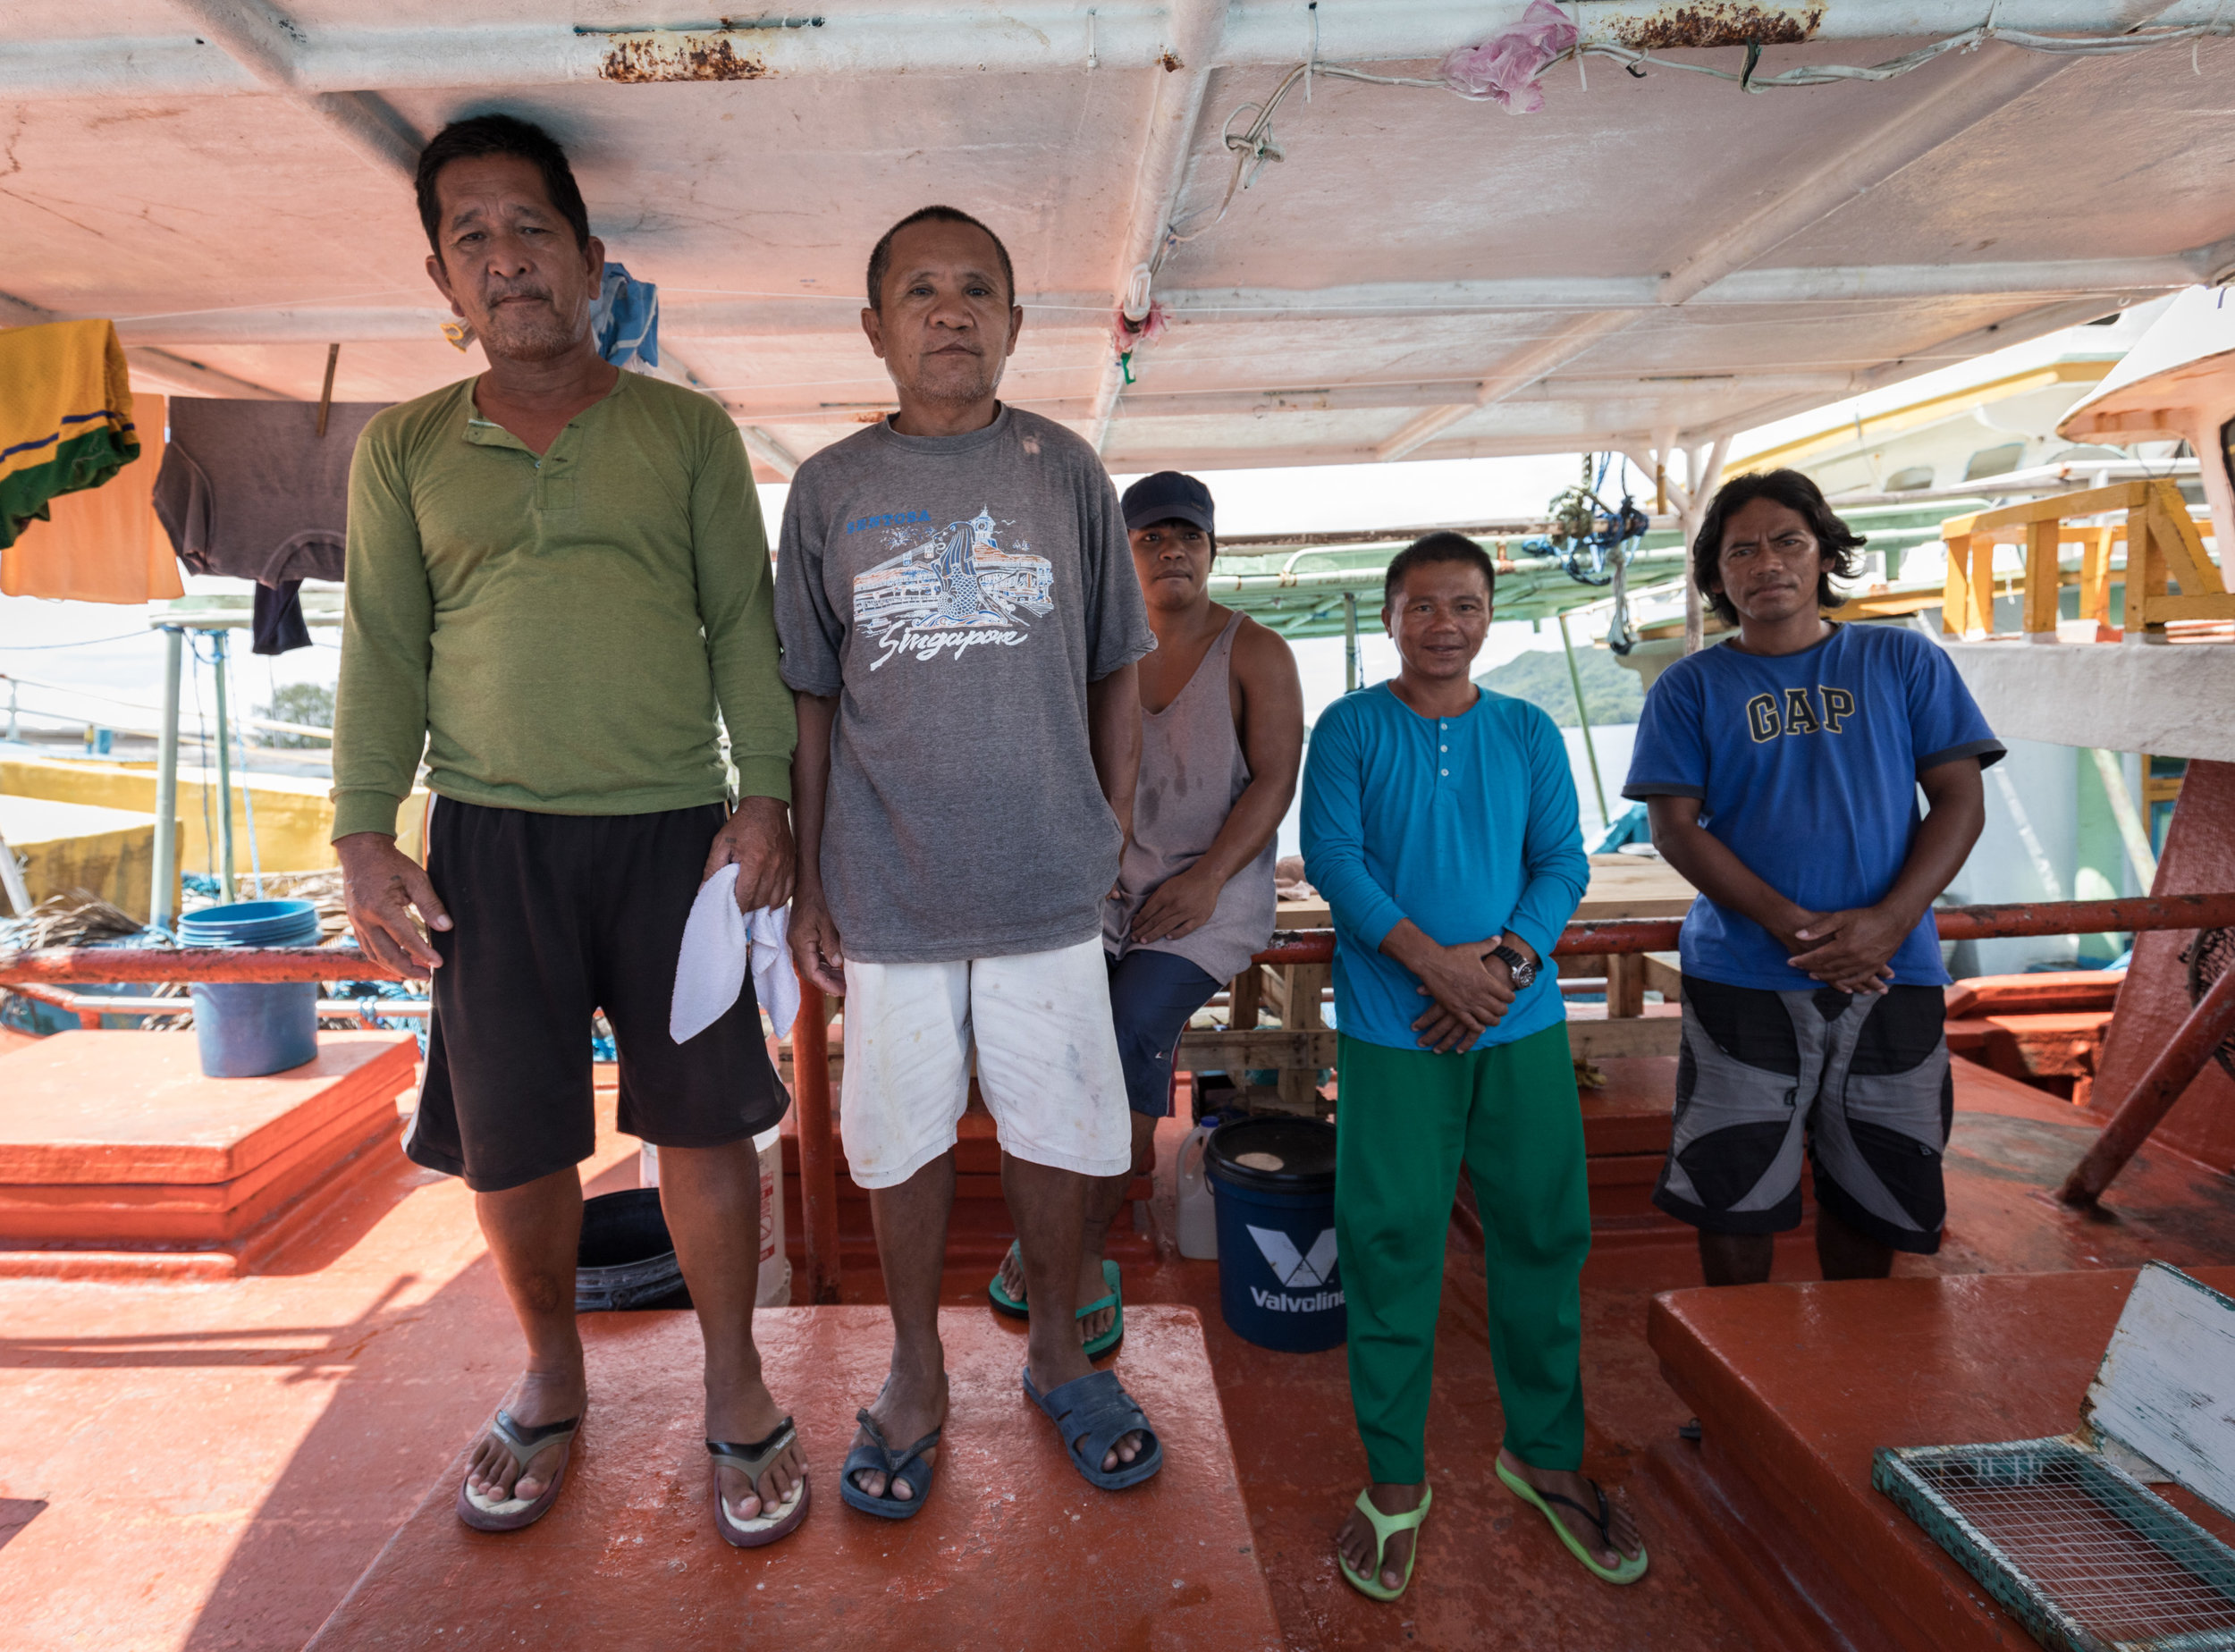 The Filipino fishing crew under house arrest, living on a seized vessel in Palau, June 2017.